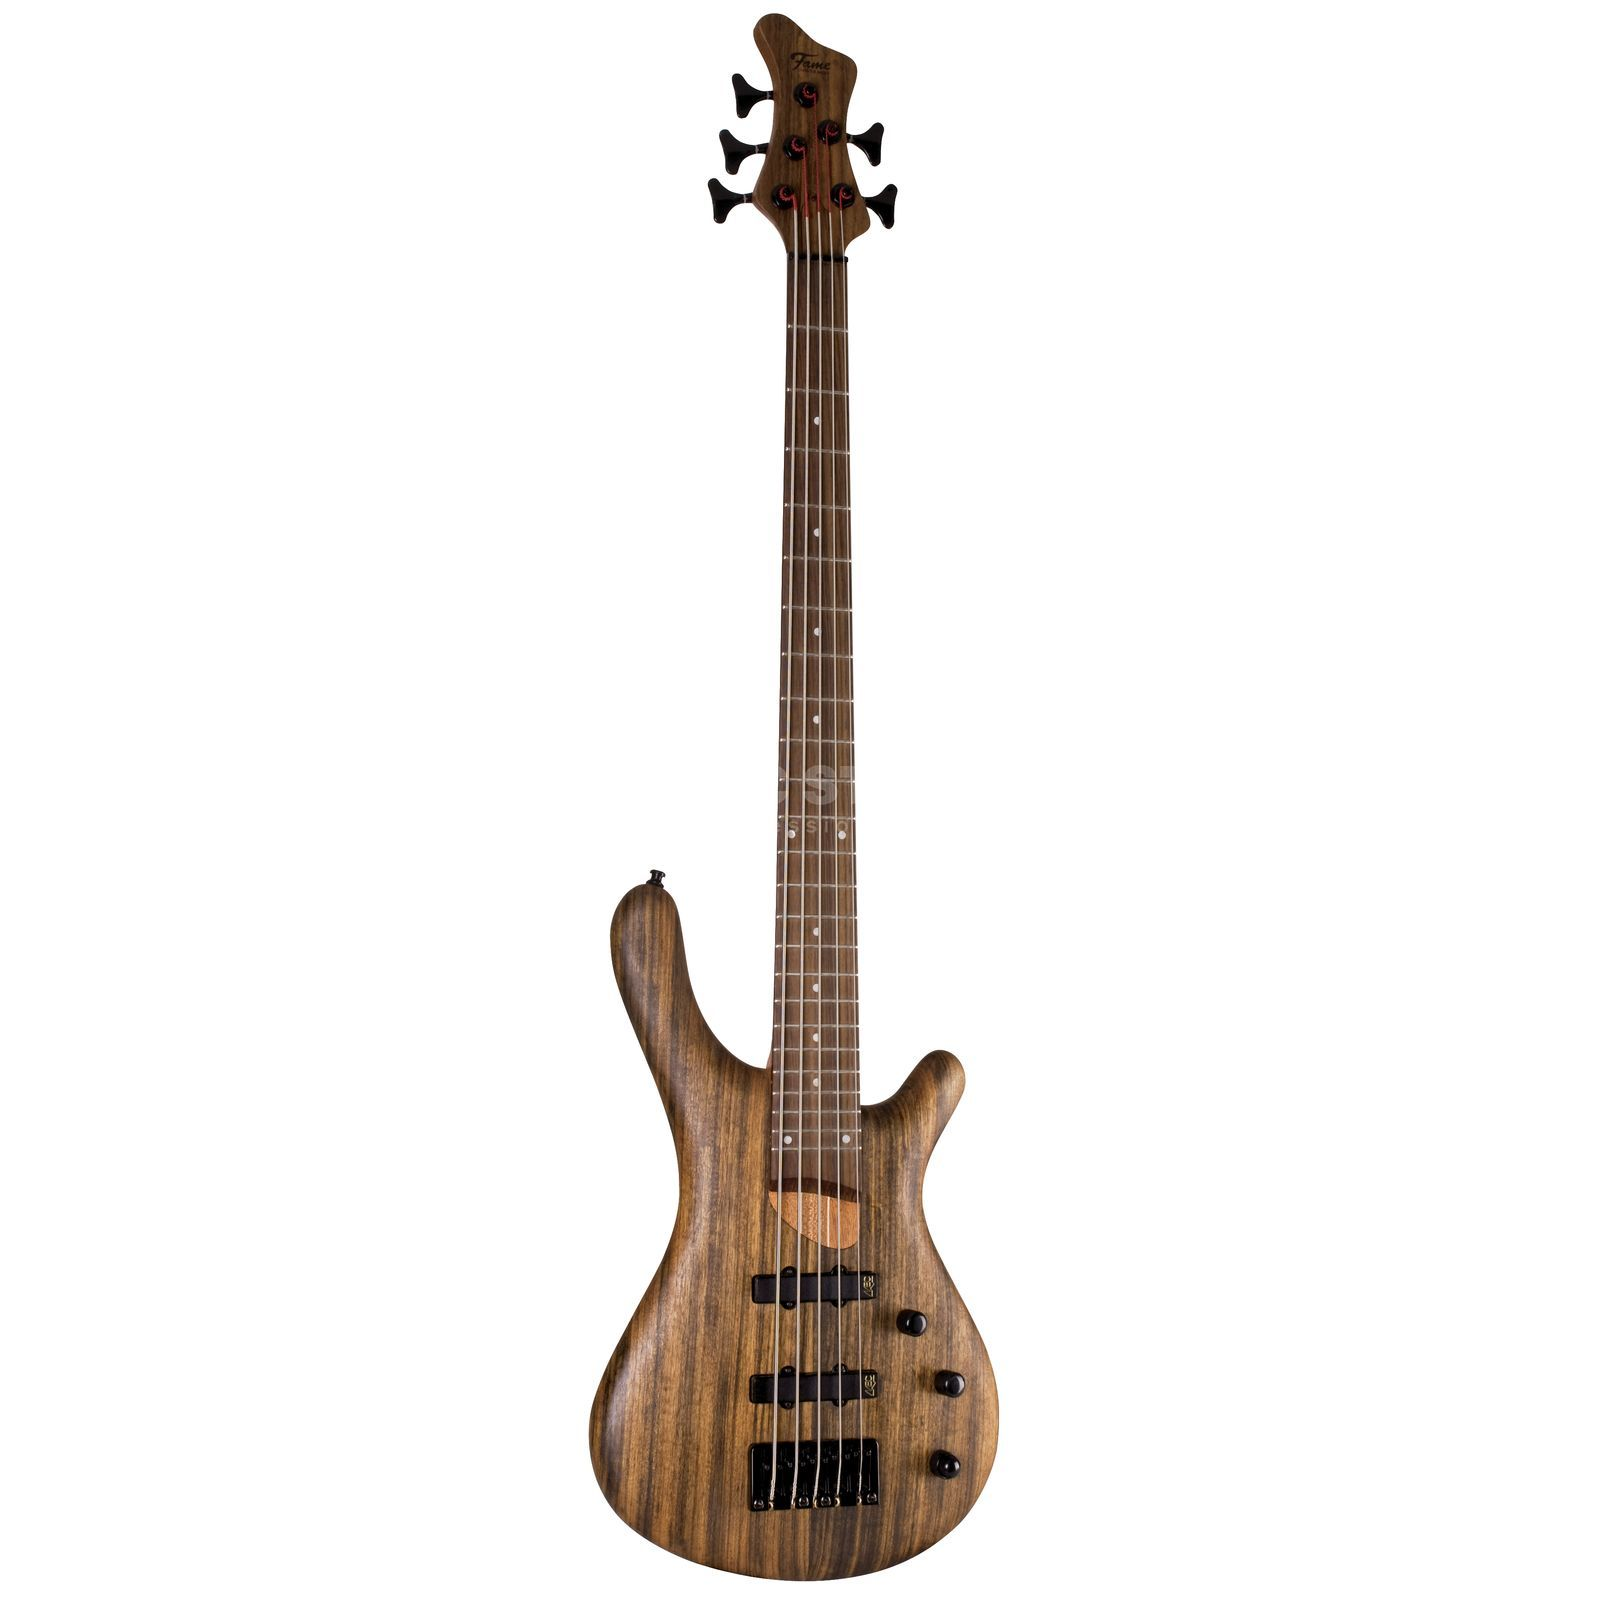 Fame Baphomet 5 Natural 5-String E- Bass Guitar, Natural Oil Immagine prodotto